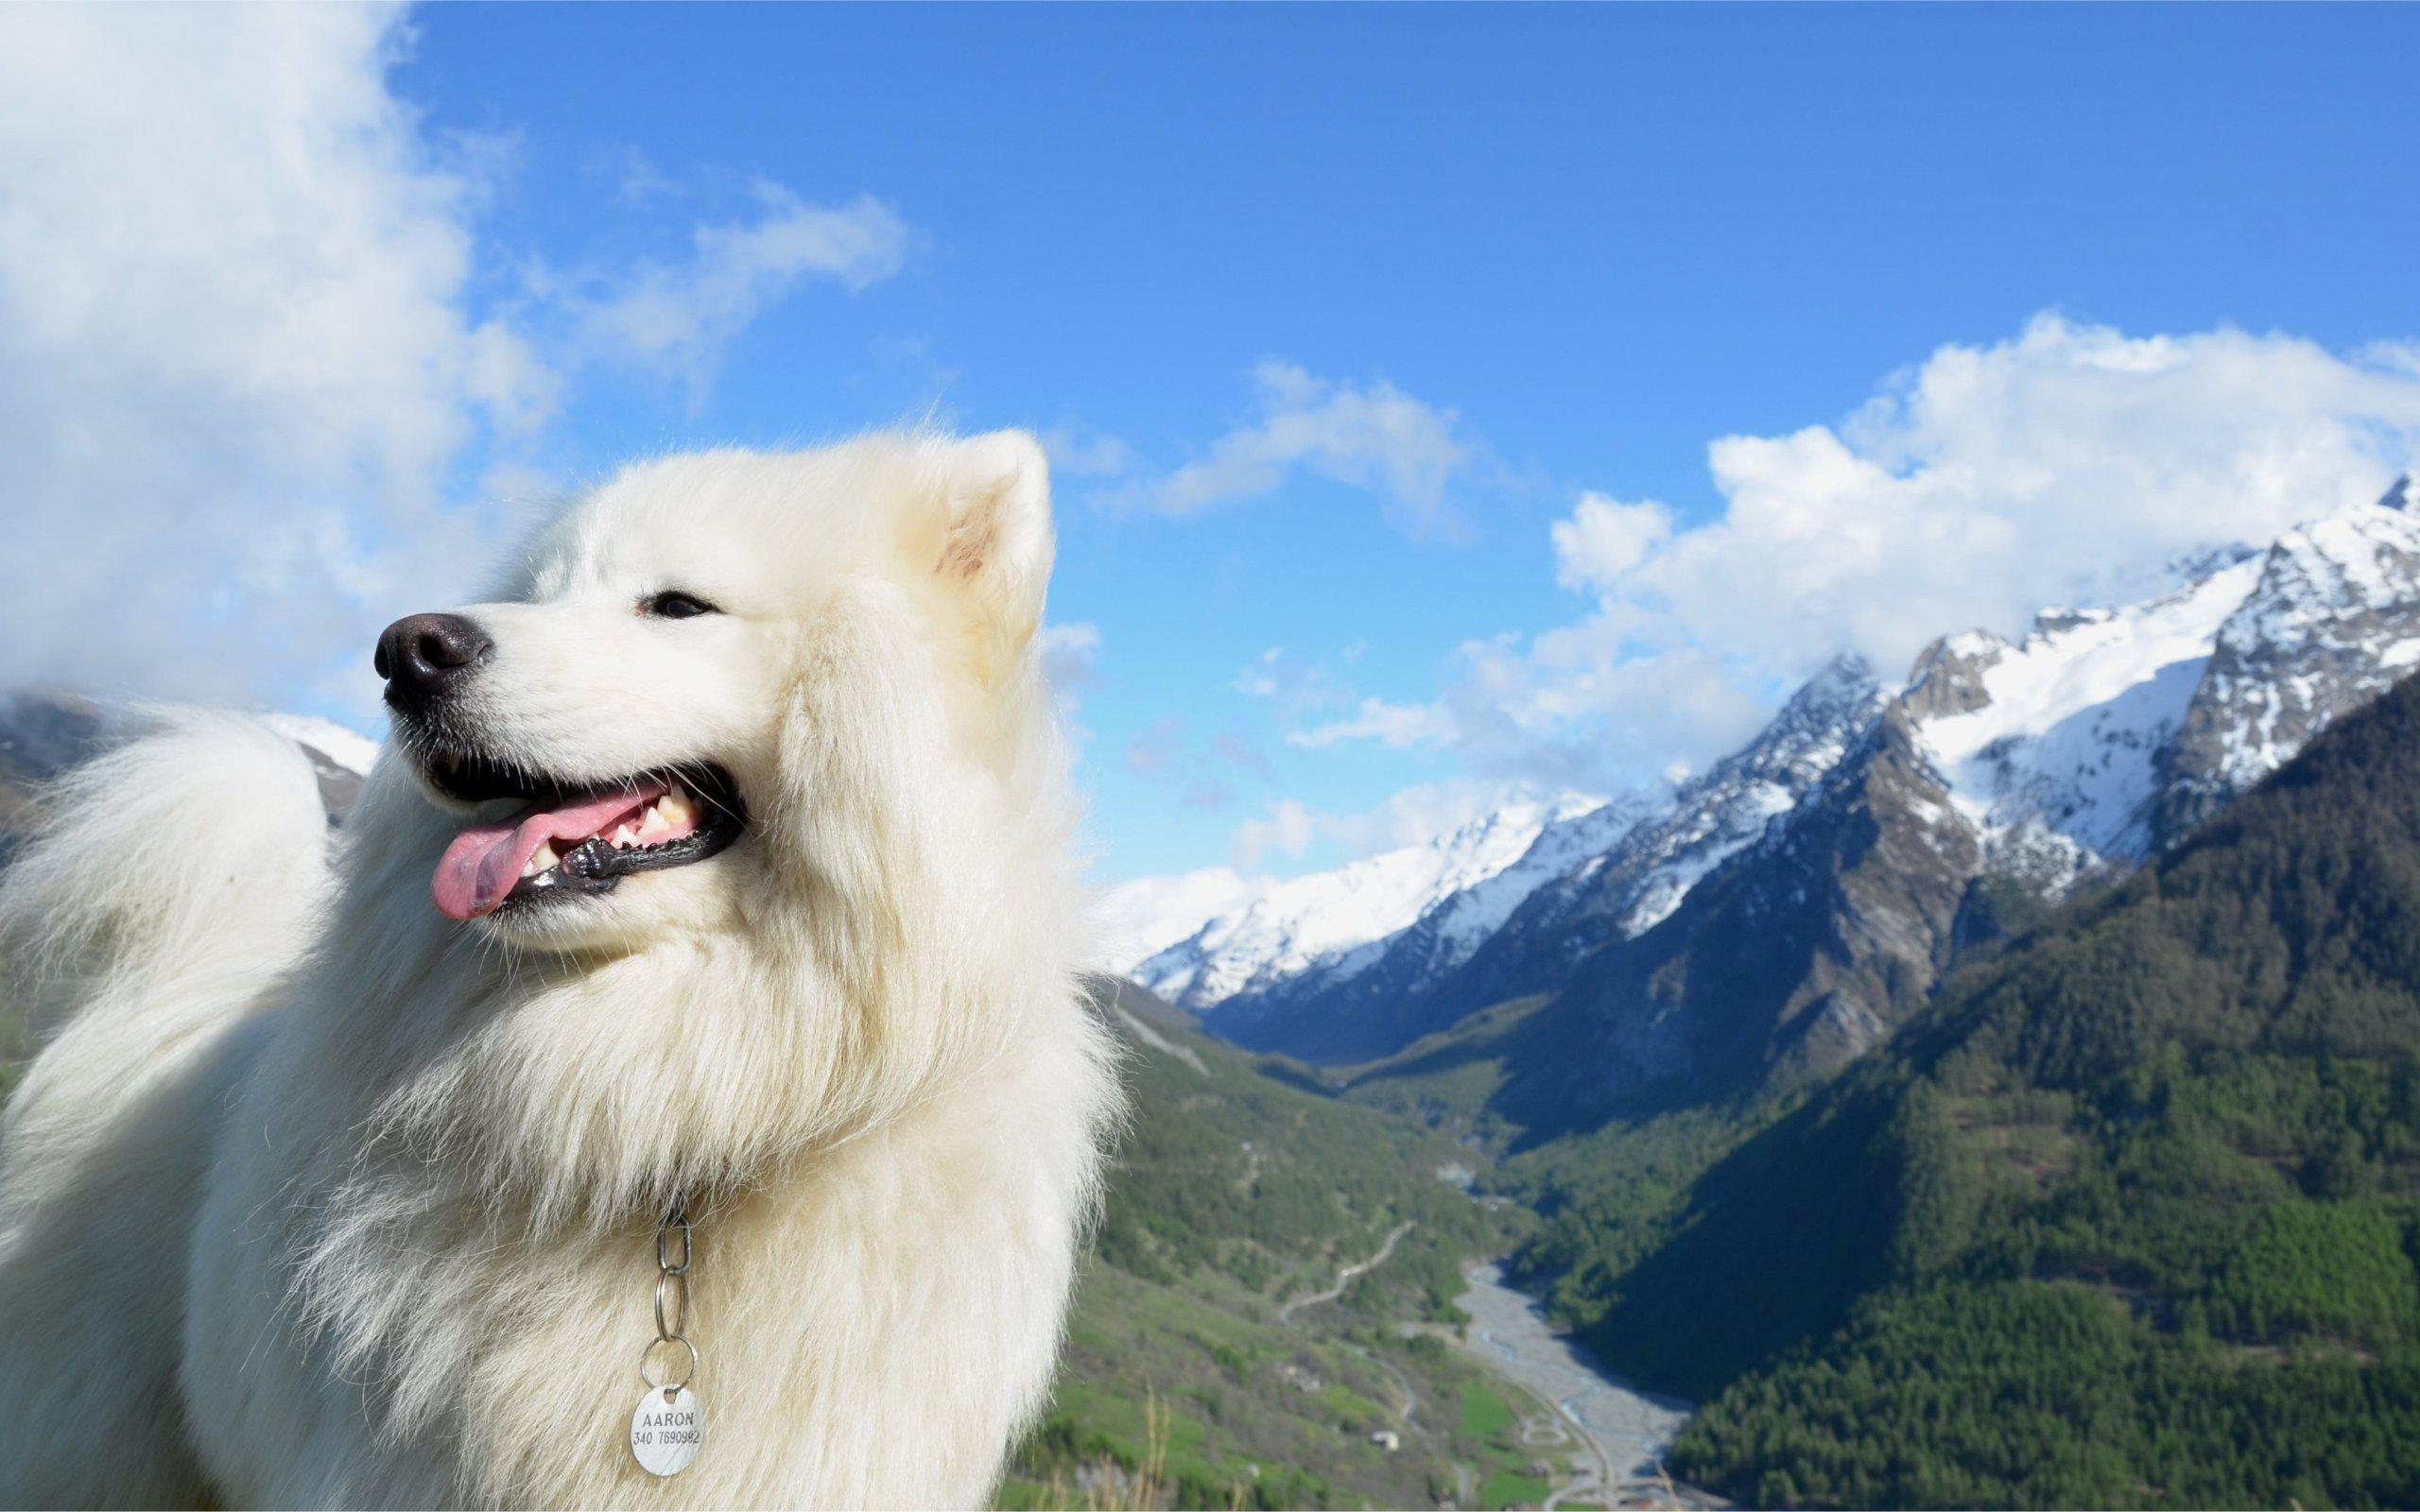 Cute Puppies Wallpaper 1080p Hd Mountains Clouds Landscapes Nature Animals Dogs